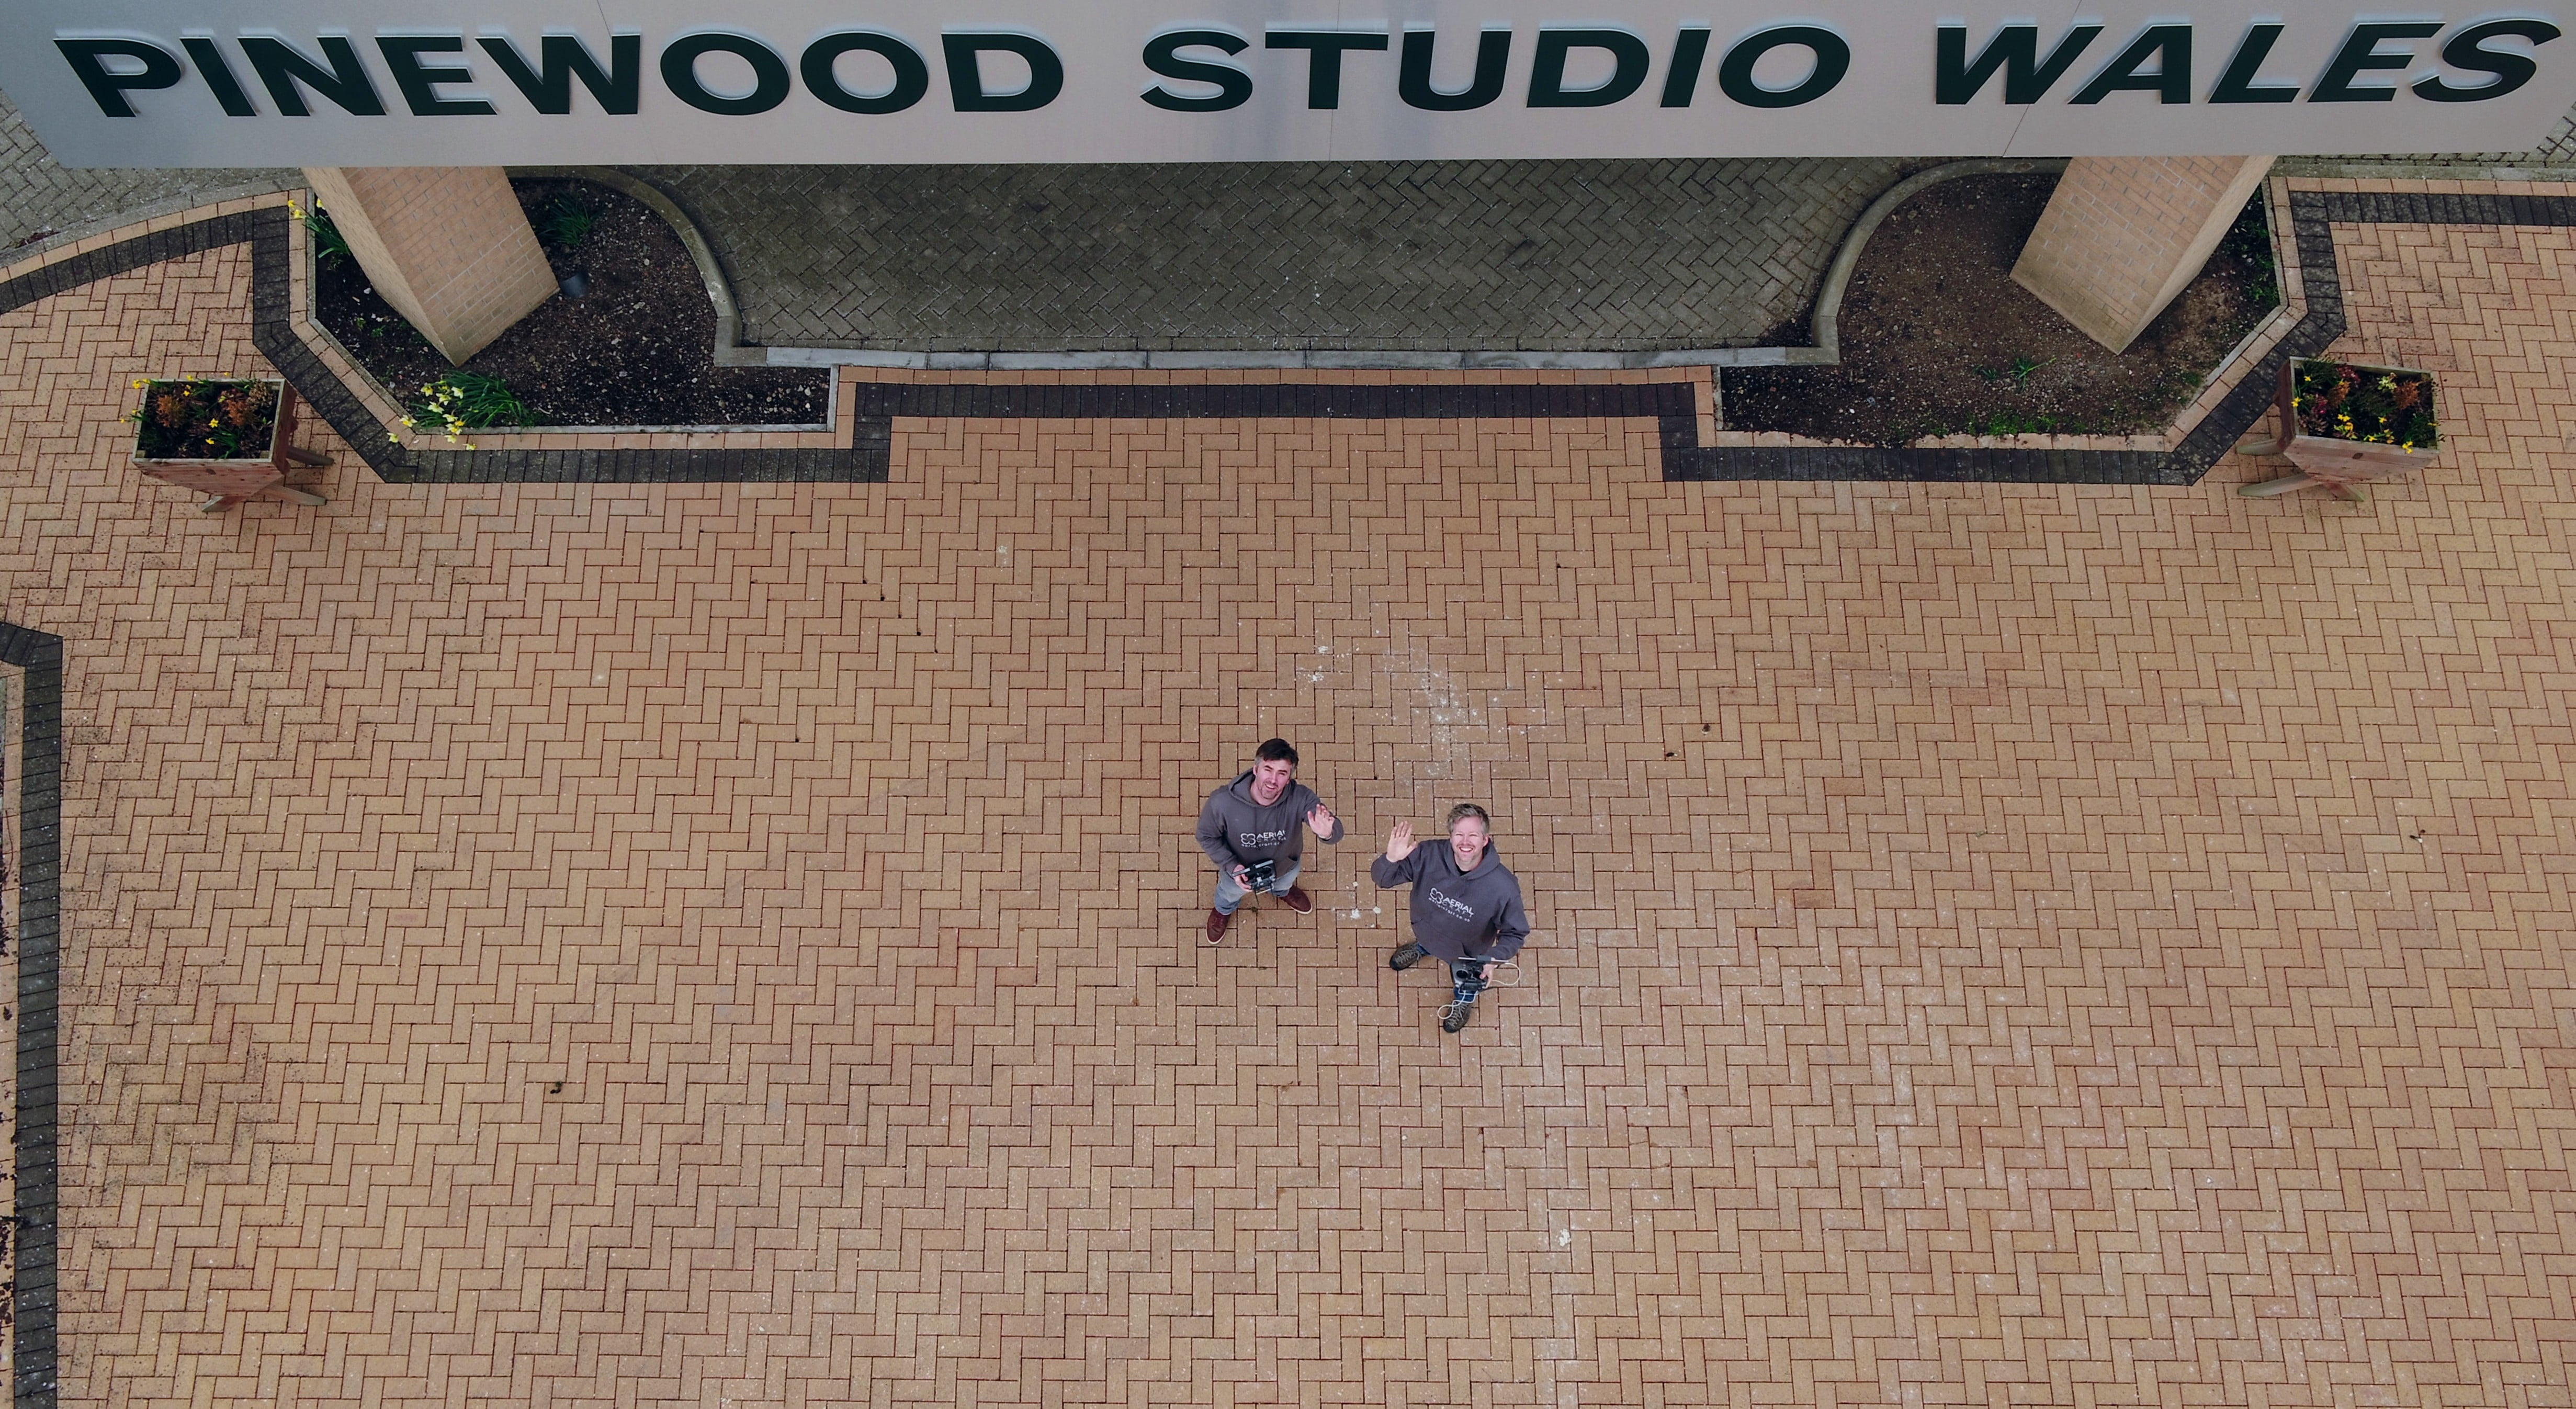 aerial view of us outside pinewood studios